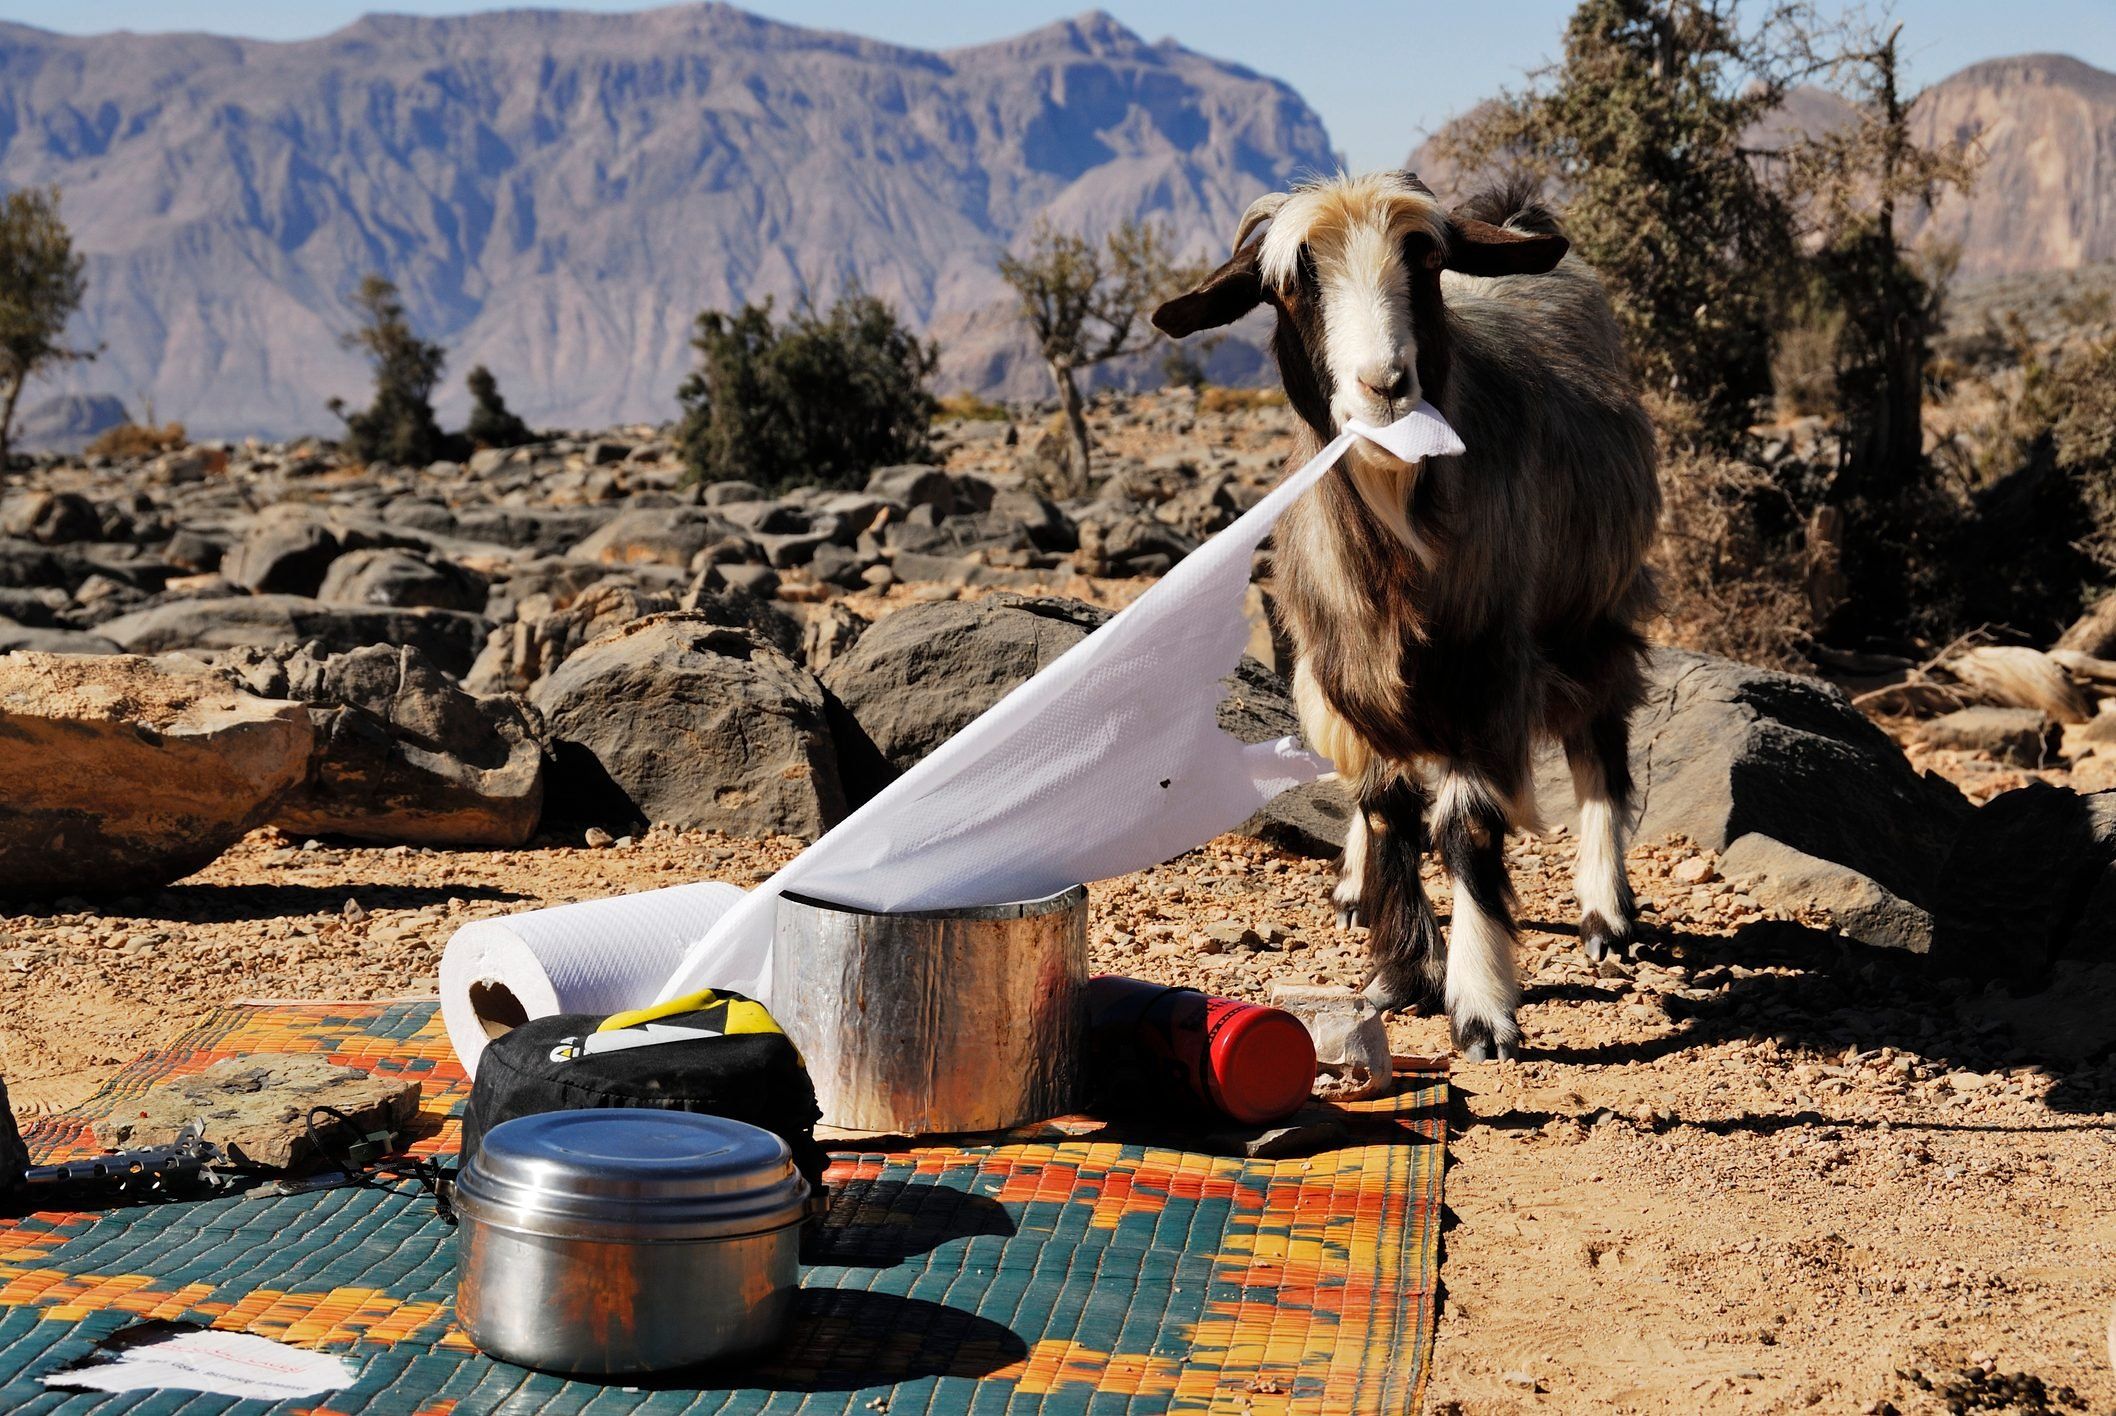 A goat eats paper on a campsite in the desert